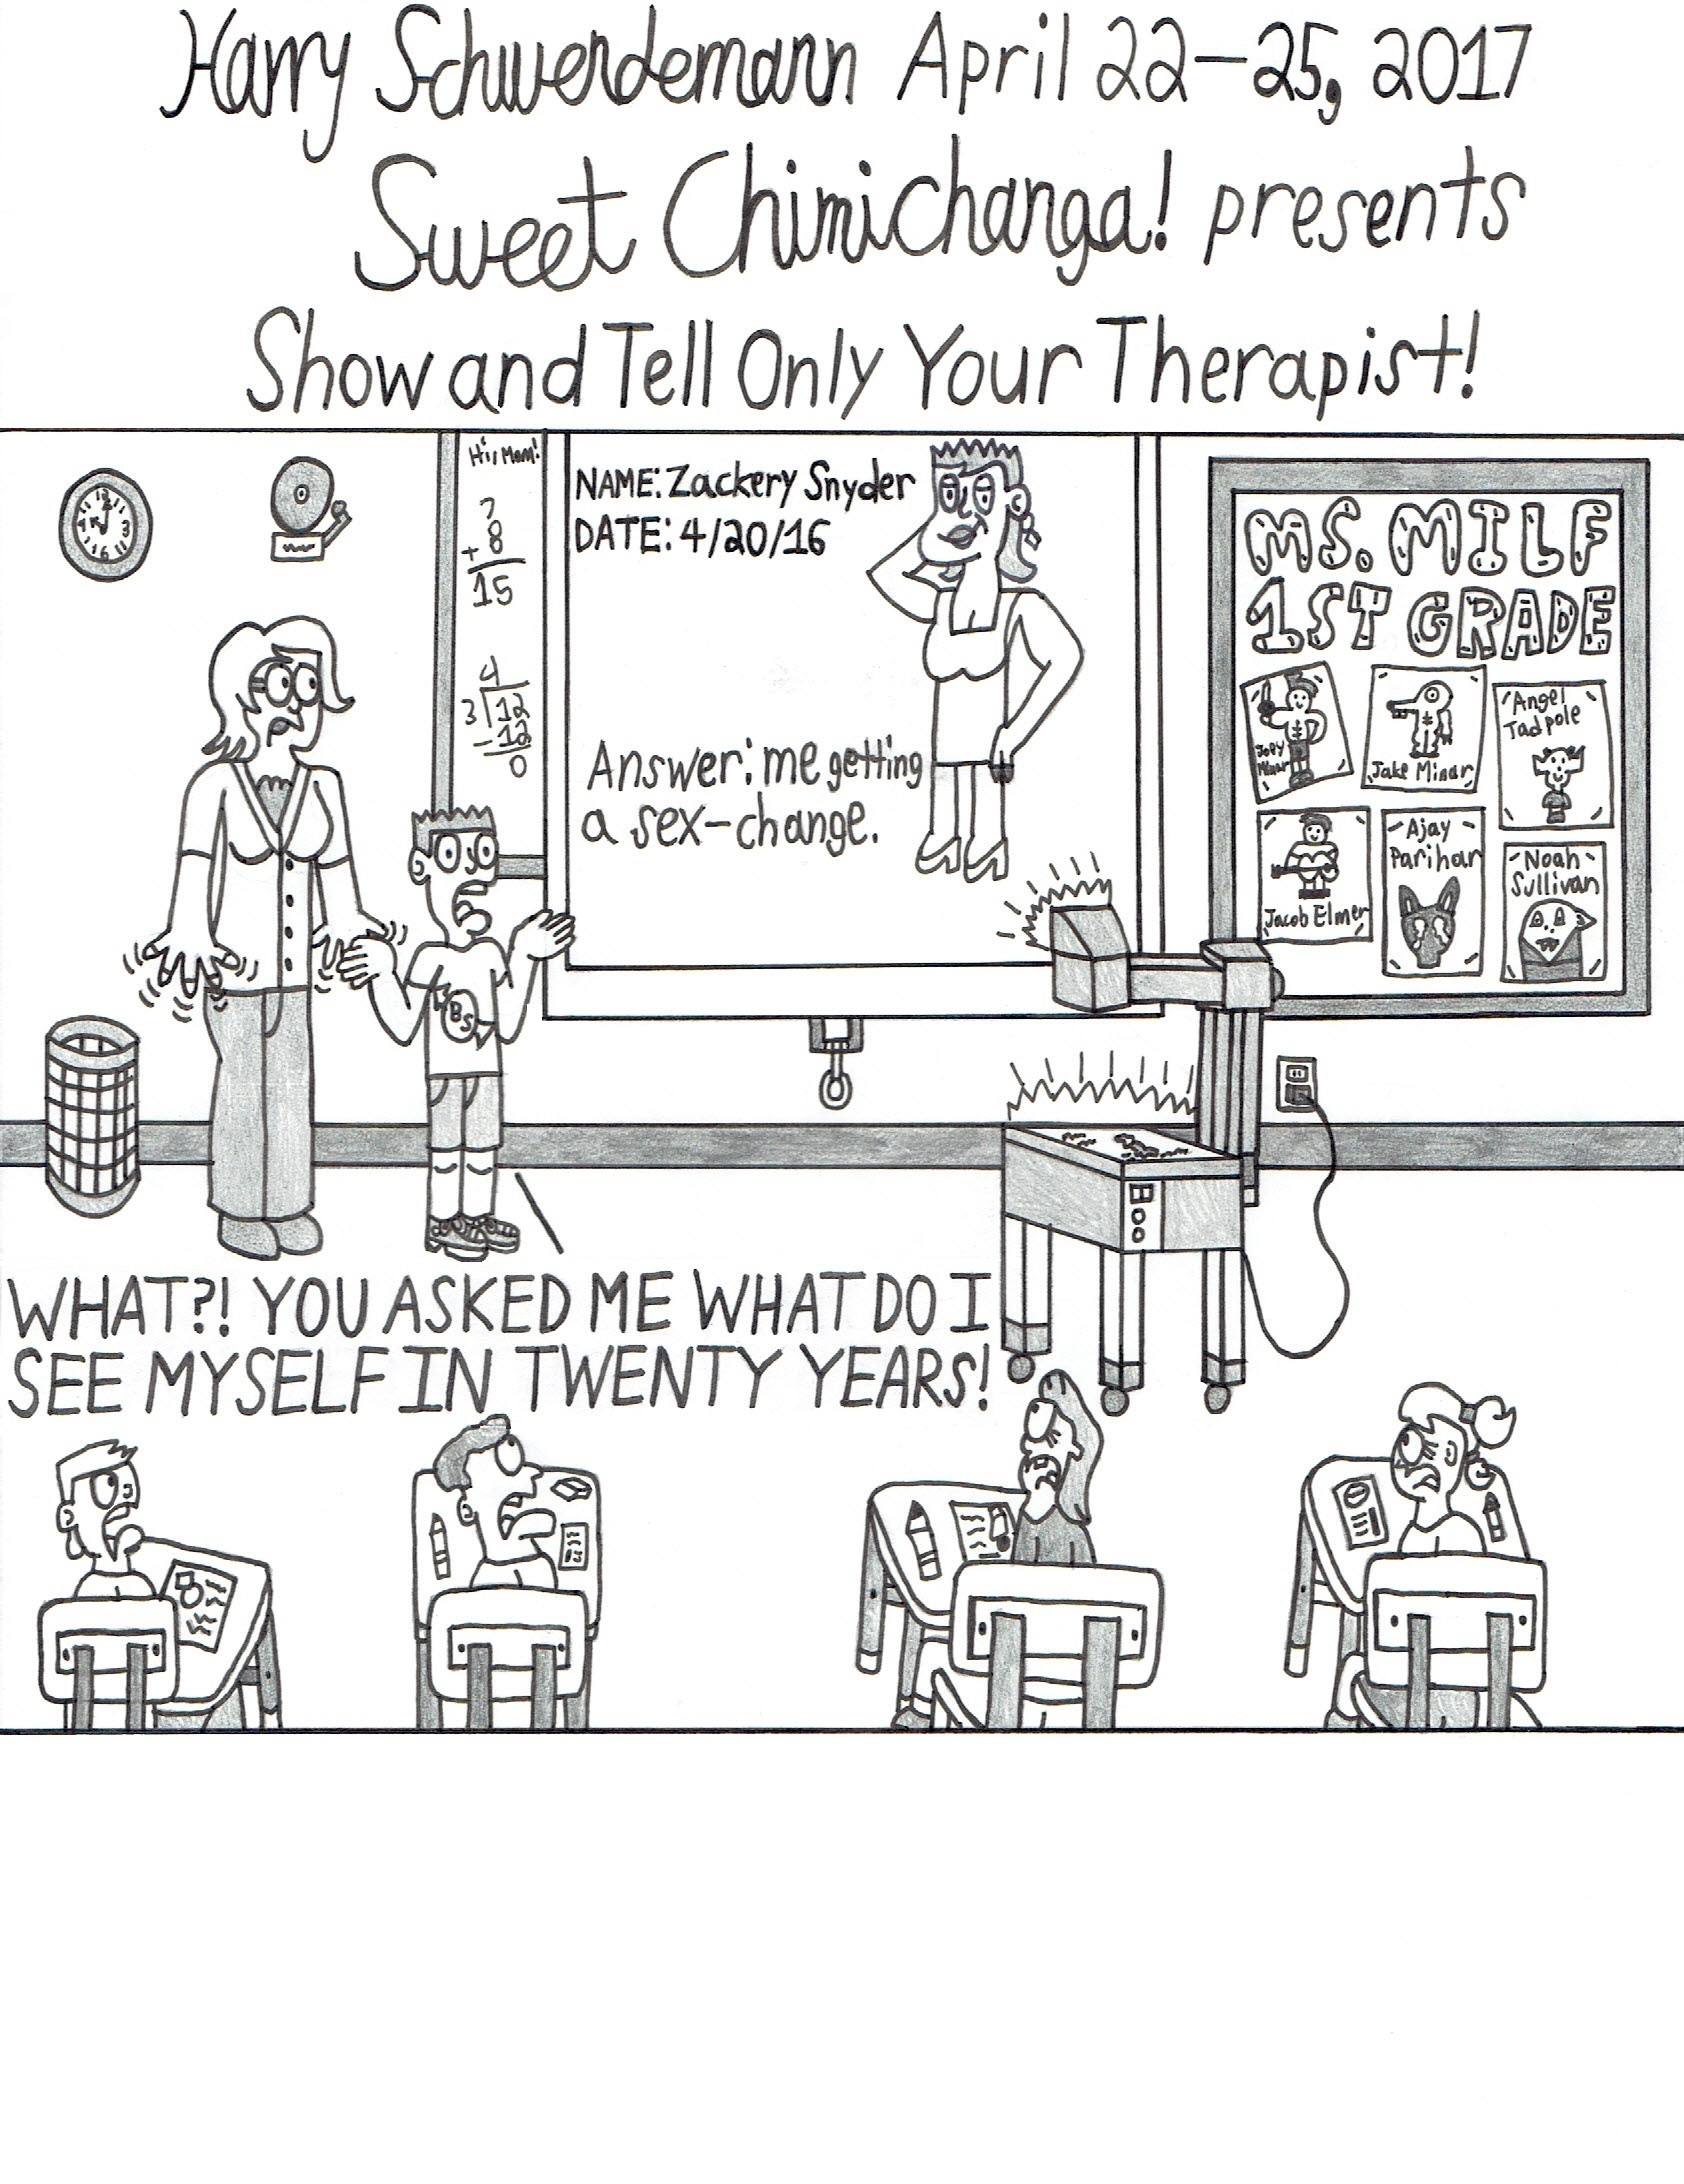 Show and Tell Only Your Therapist!